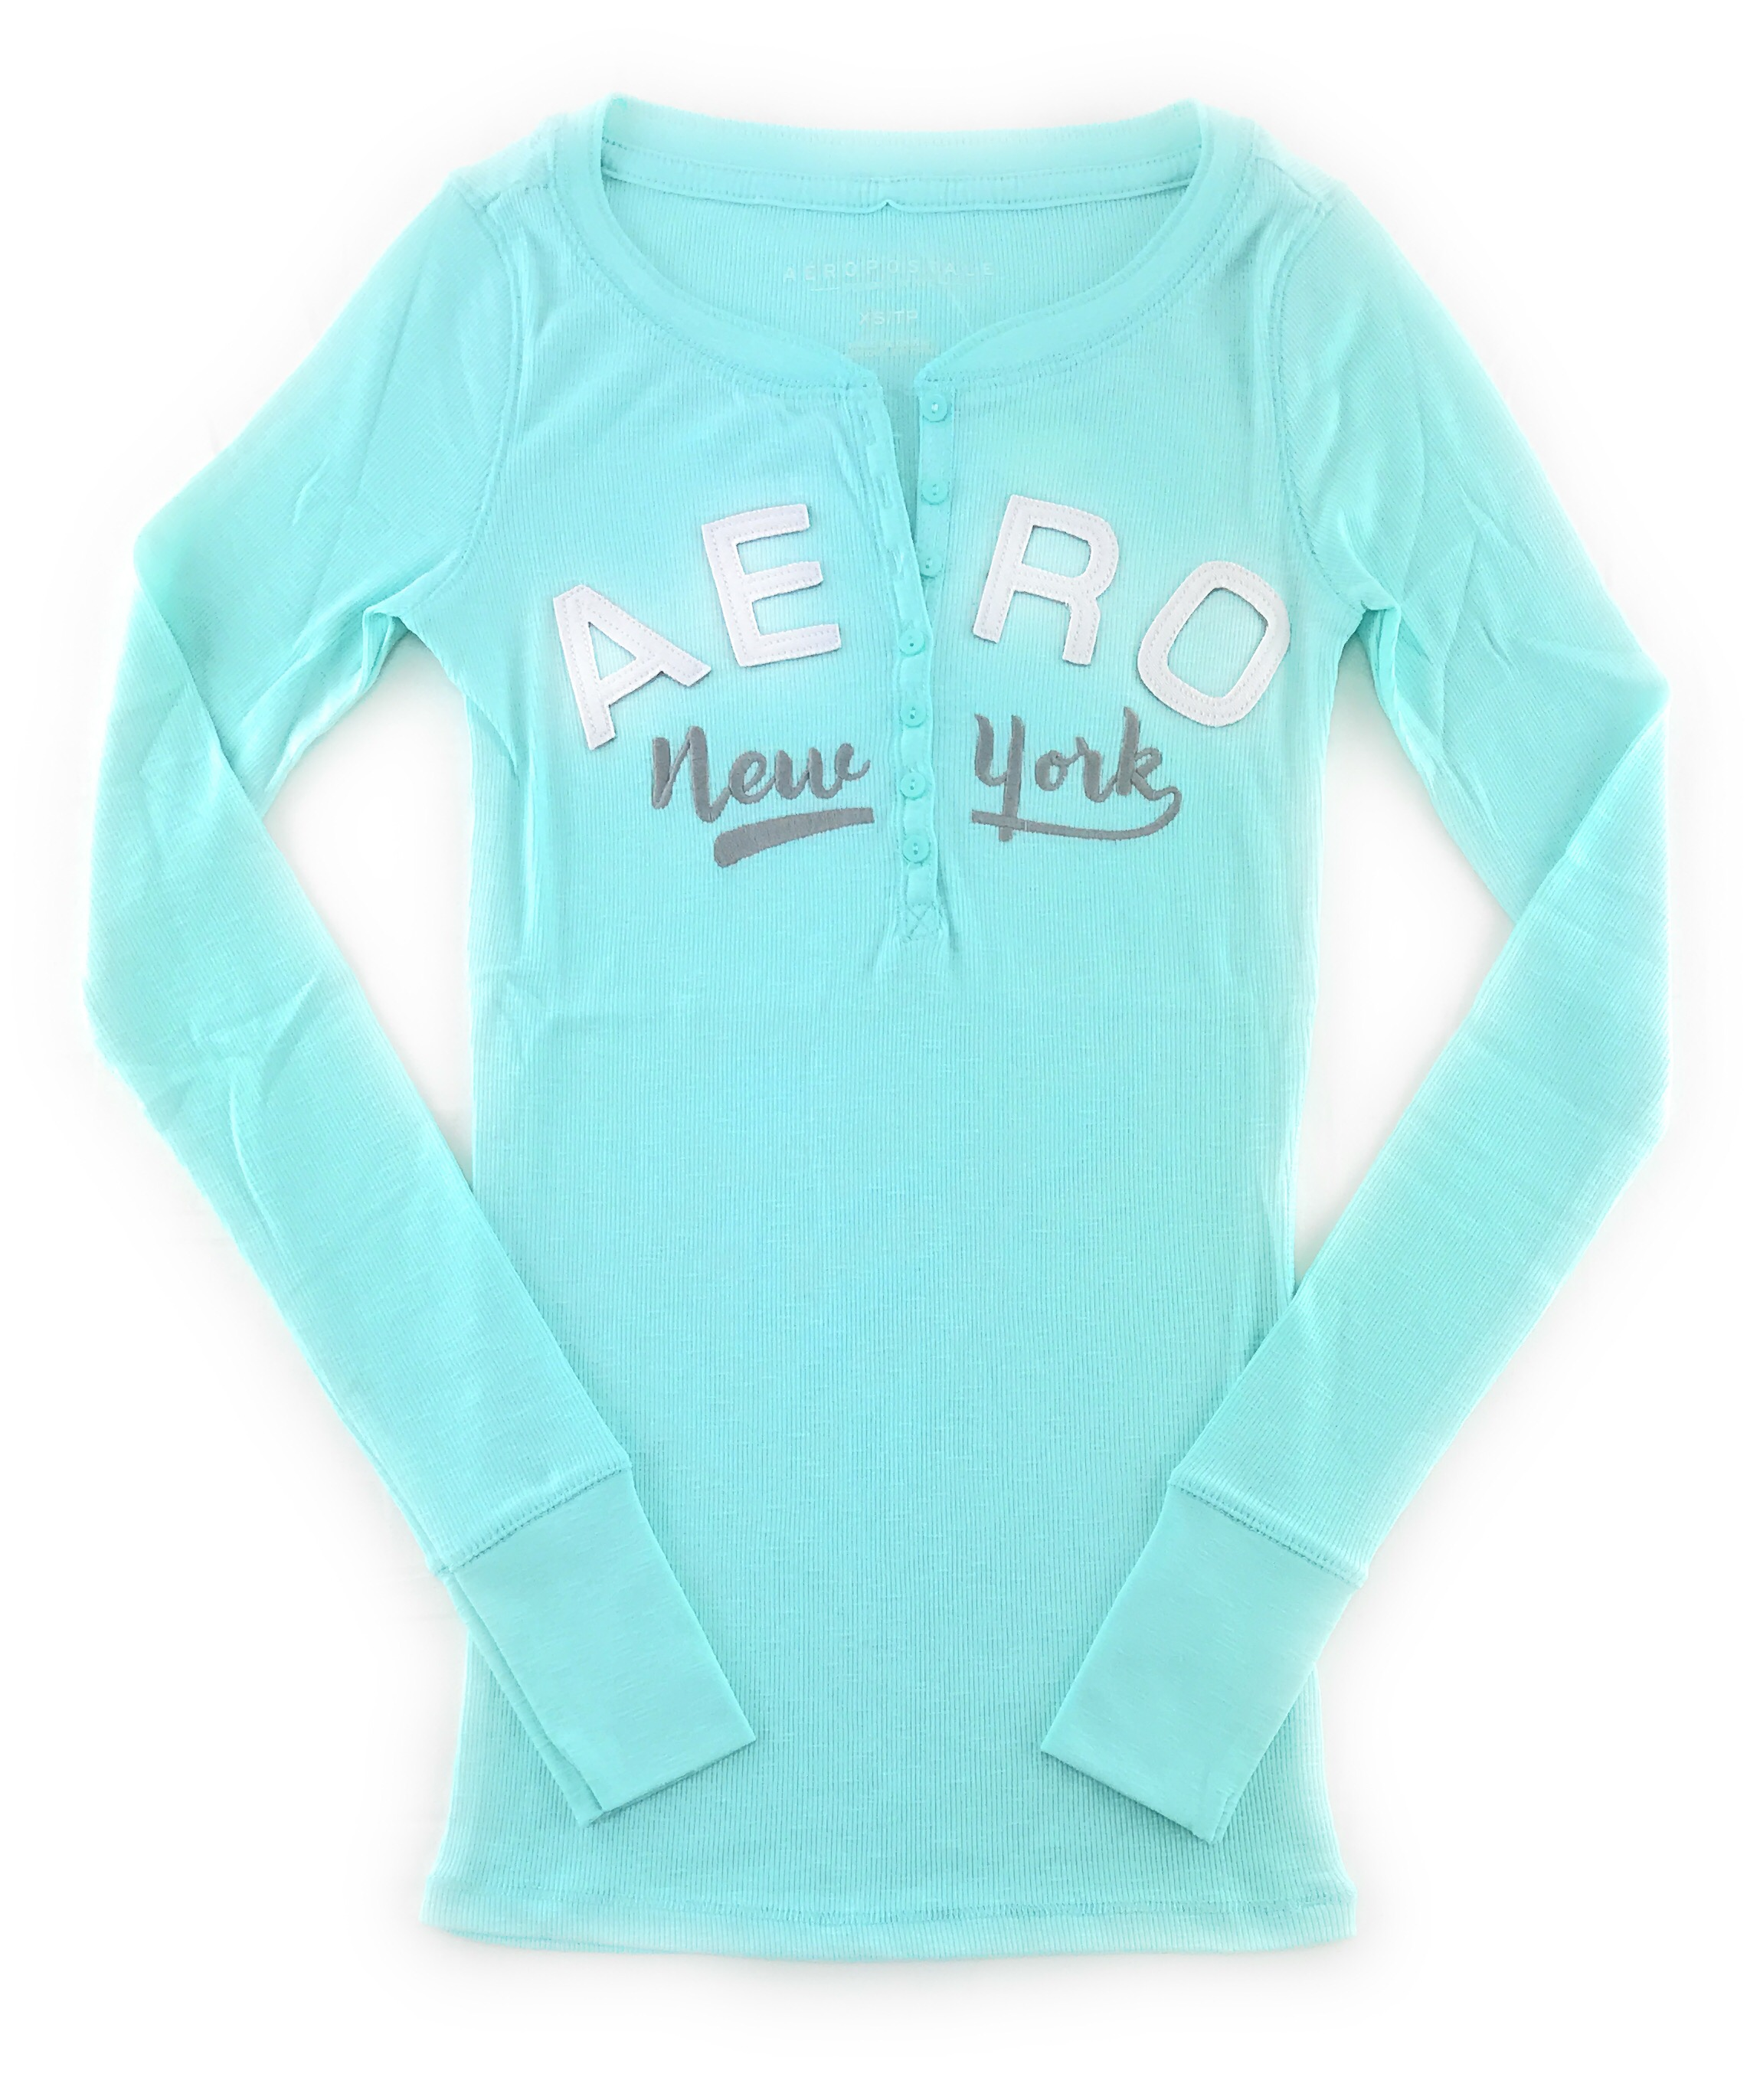 AEROPOSTALE-WOMENS-LONG-SLEEVE-HENLEY-T-SHIRT-BUTTONS-APPLIQUE-EMBROIDERED-LOGO thumbnail 4